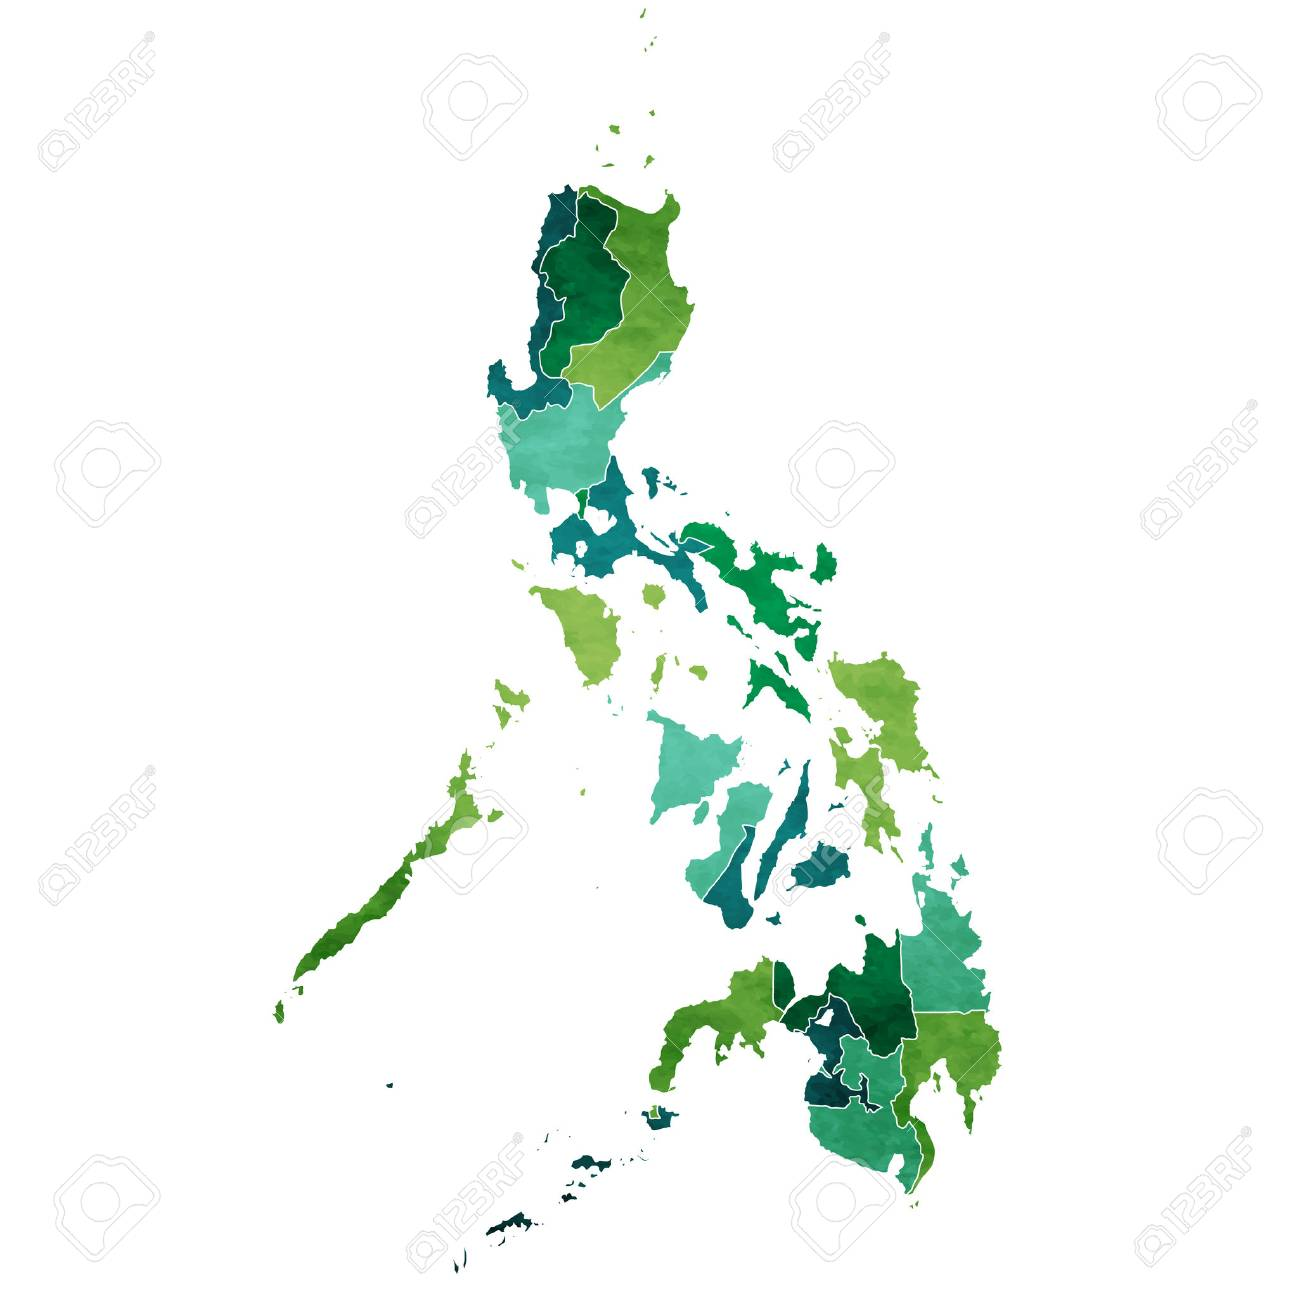 Philippines World map country icon on iloilo city philippines, how big is the philippines, typhoon ruby philippines, hong kong, weather philippines, globe philippines, world war 2 bacolod, history spanish colonization philippines, houses in the philippines, cities in philippines, country philippines, 100 islands philippines, southeast asia, quezon city philippines, chocolate hills bohol philippines, north korea, does the us own the philippines, boracay philippines, manila philippines, south africa, animals philippines, mindanao philippines, cebu philippines, baguio city philippines,